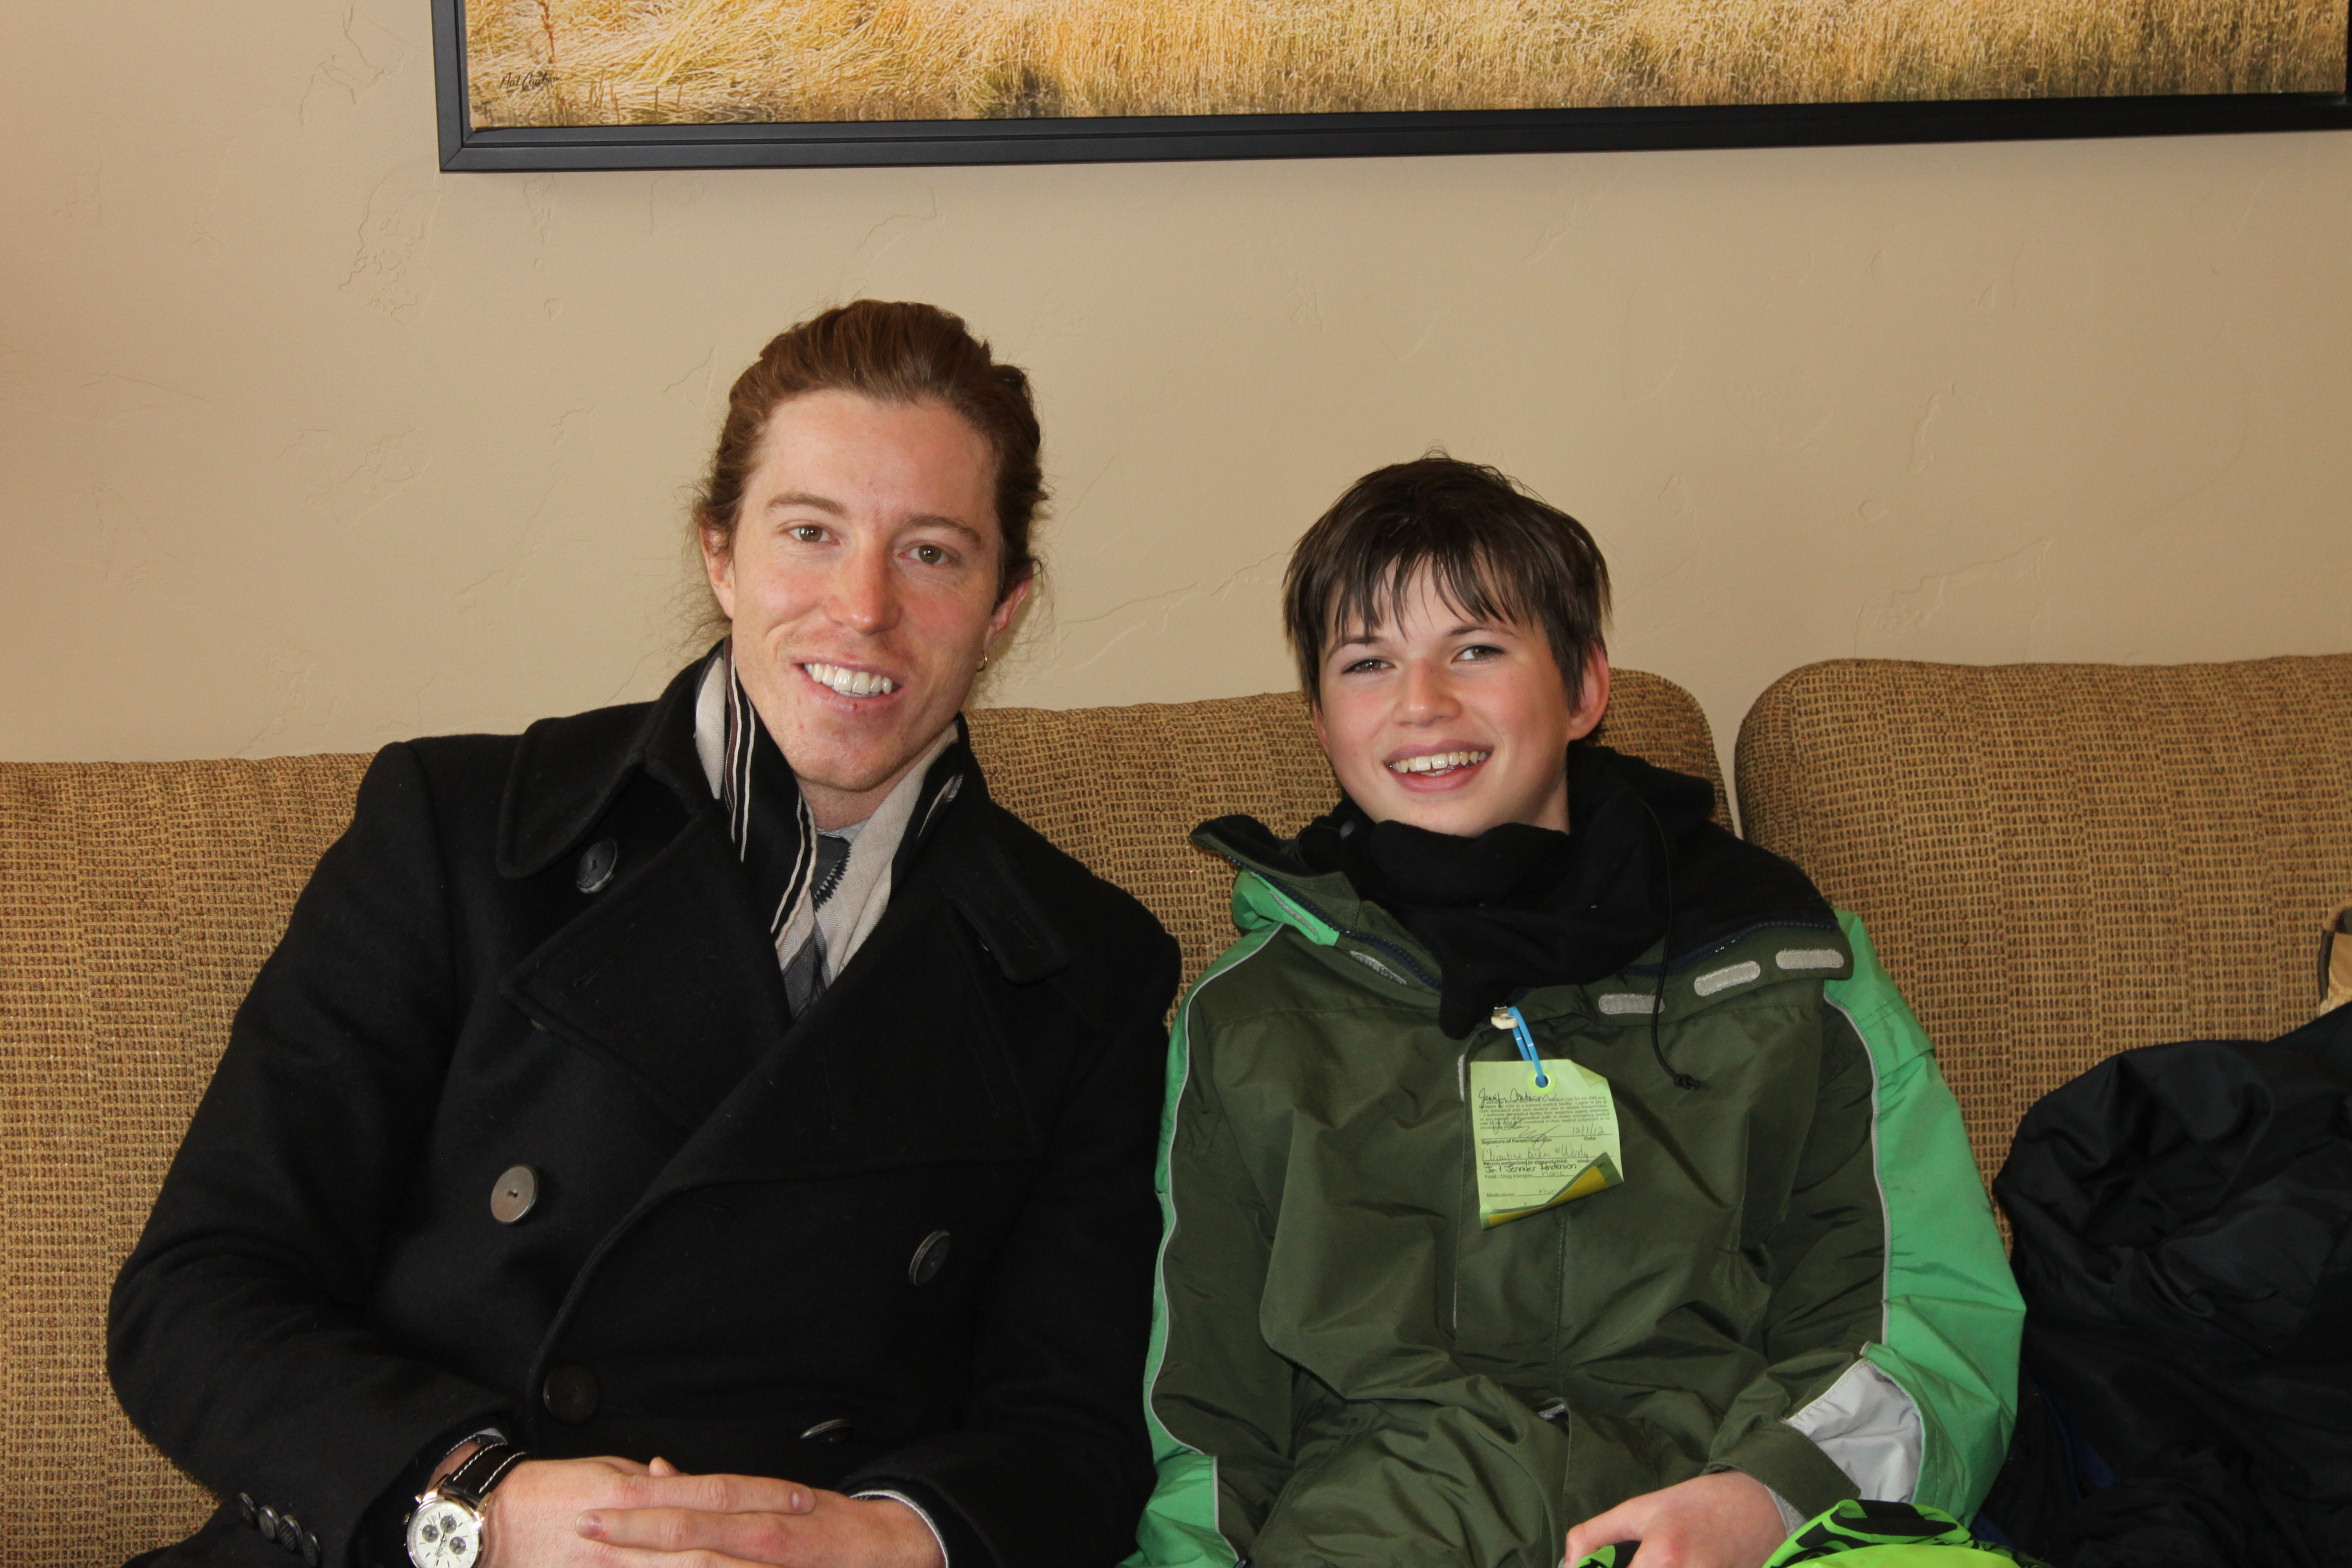 One lucky fan meets Shaun White at the Dew Tour.